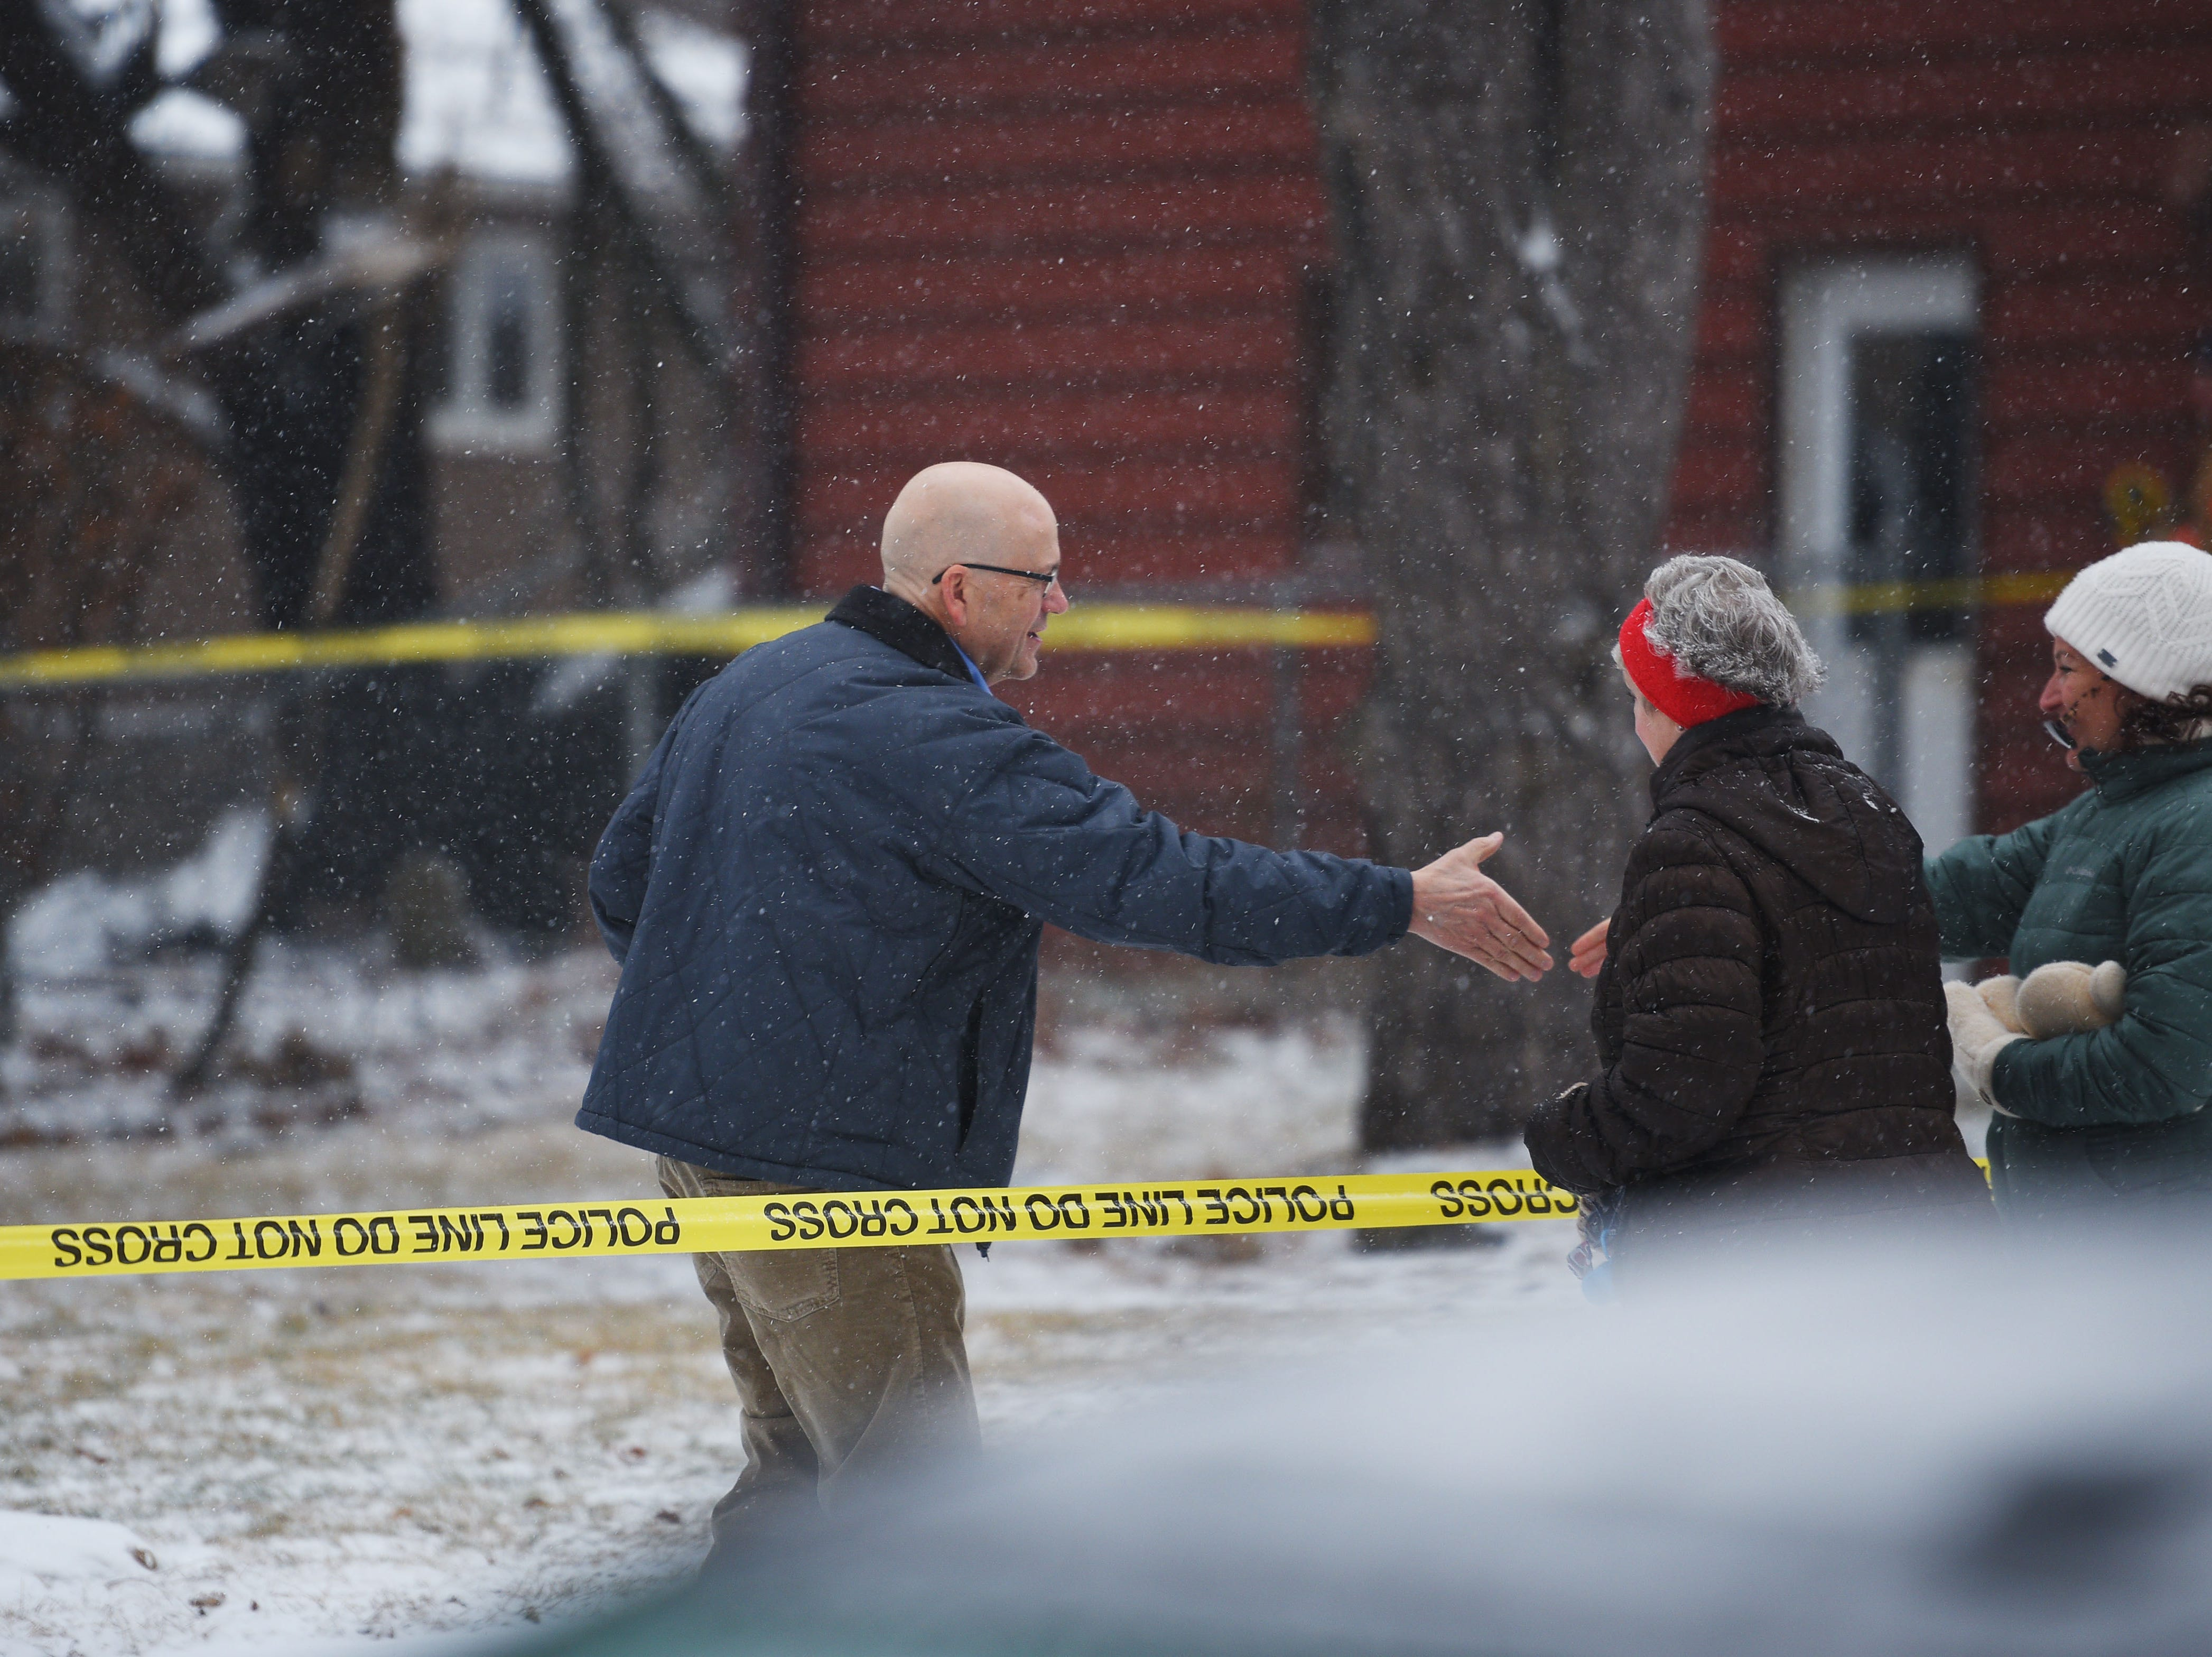 Tim Brodkorb, left, talks to neighbors who came to check in on him and his wife, Pat, at 4213 S Birchwood Wednesday, Dec. 26, in Sioux Falls. Pat and Tim Brodkorb were the first who were allowed to return home after evacuating their home last night after a plane crashed into their backyard.